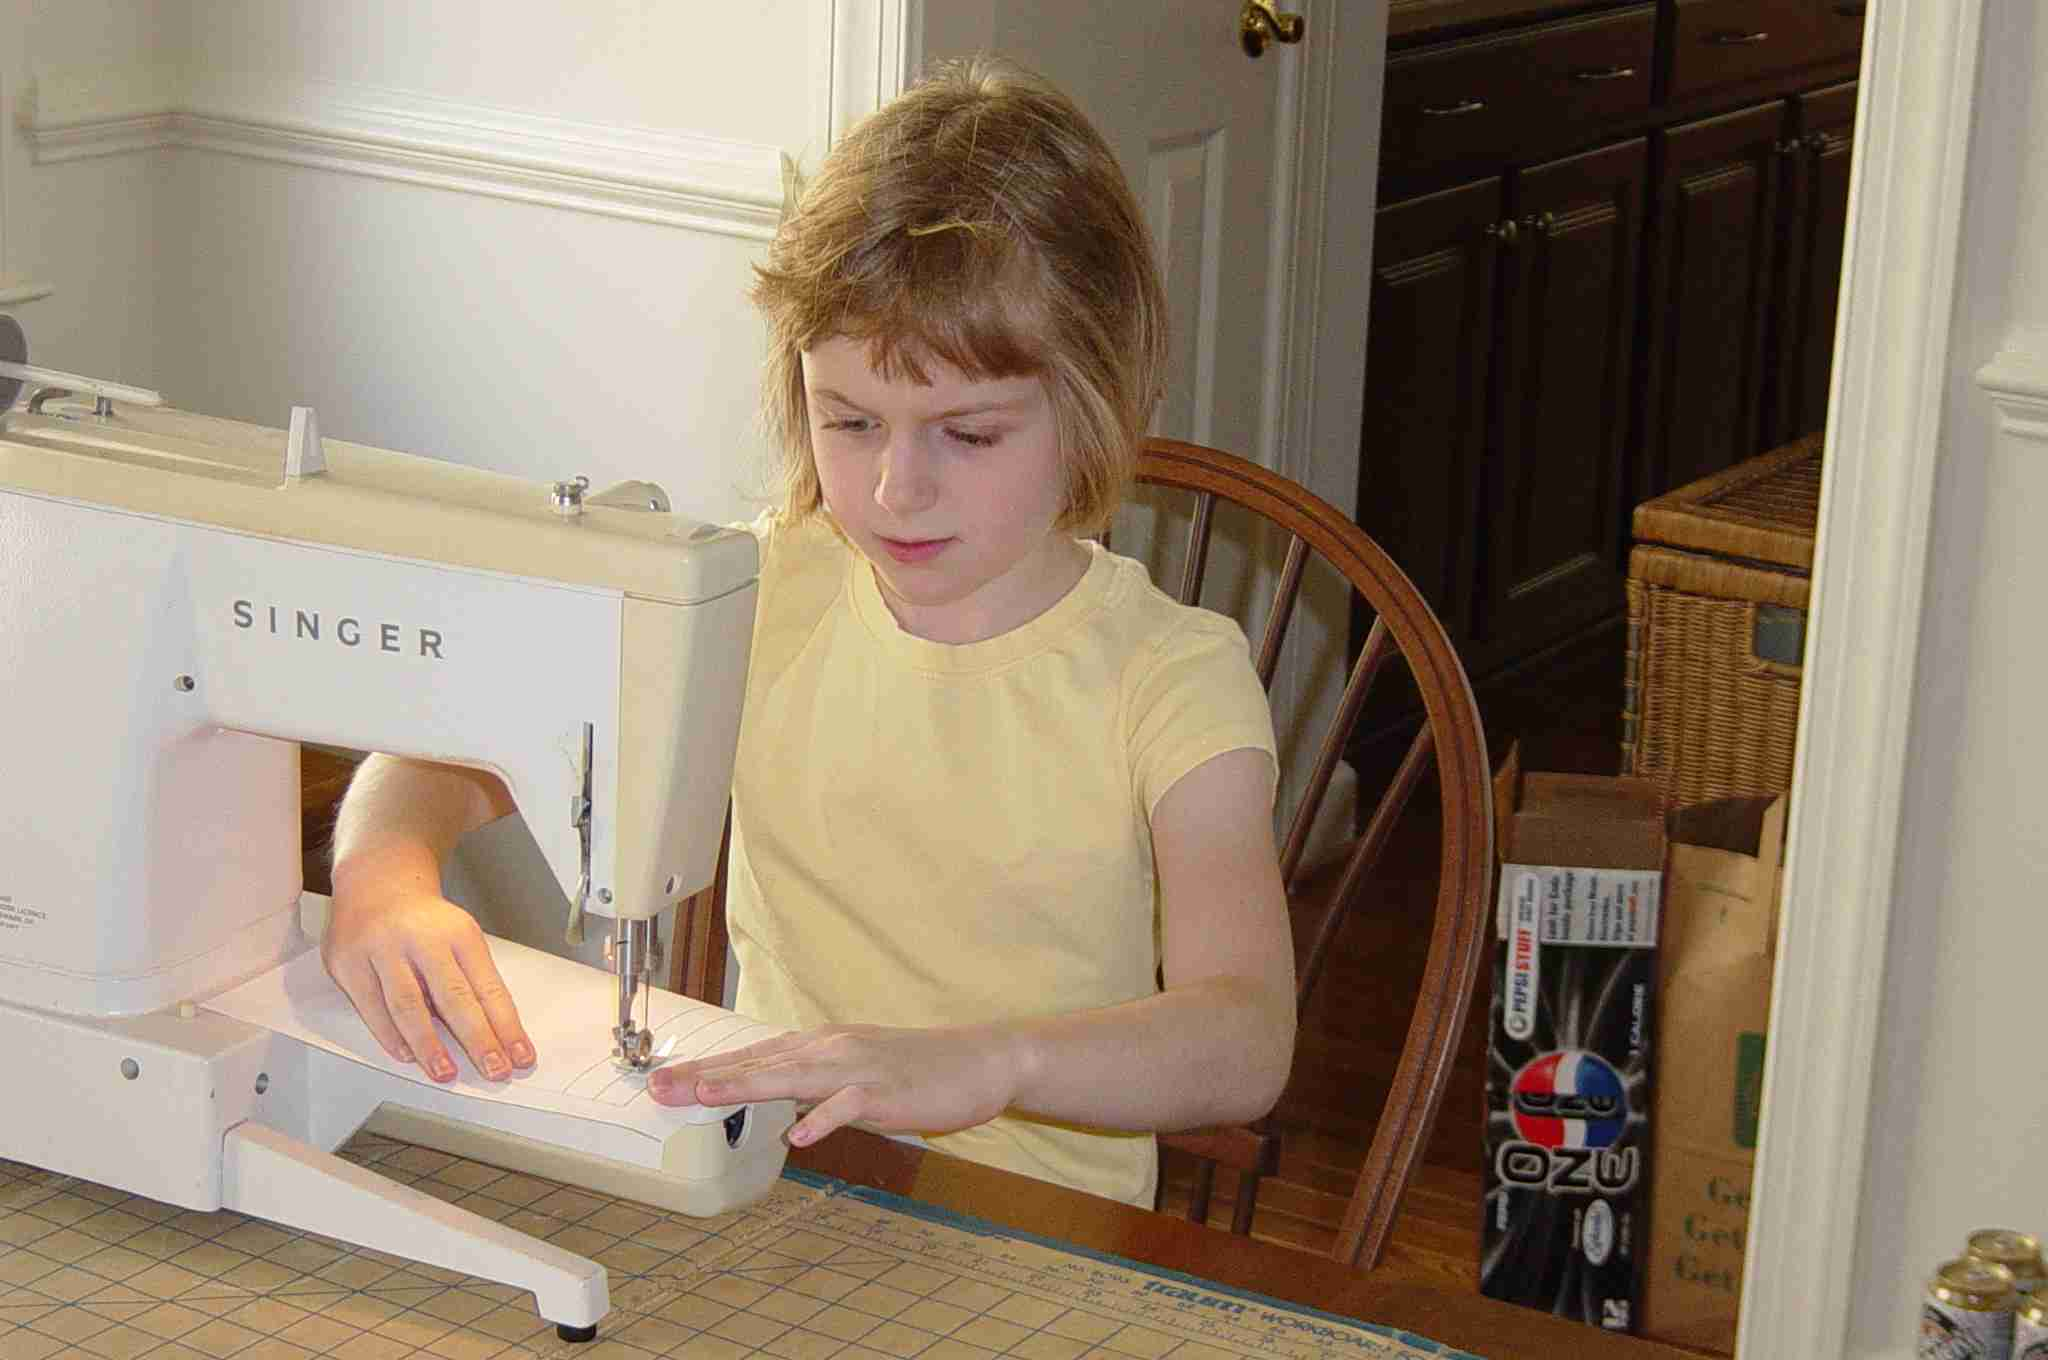 8yo girl at a sewing machine